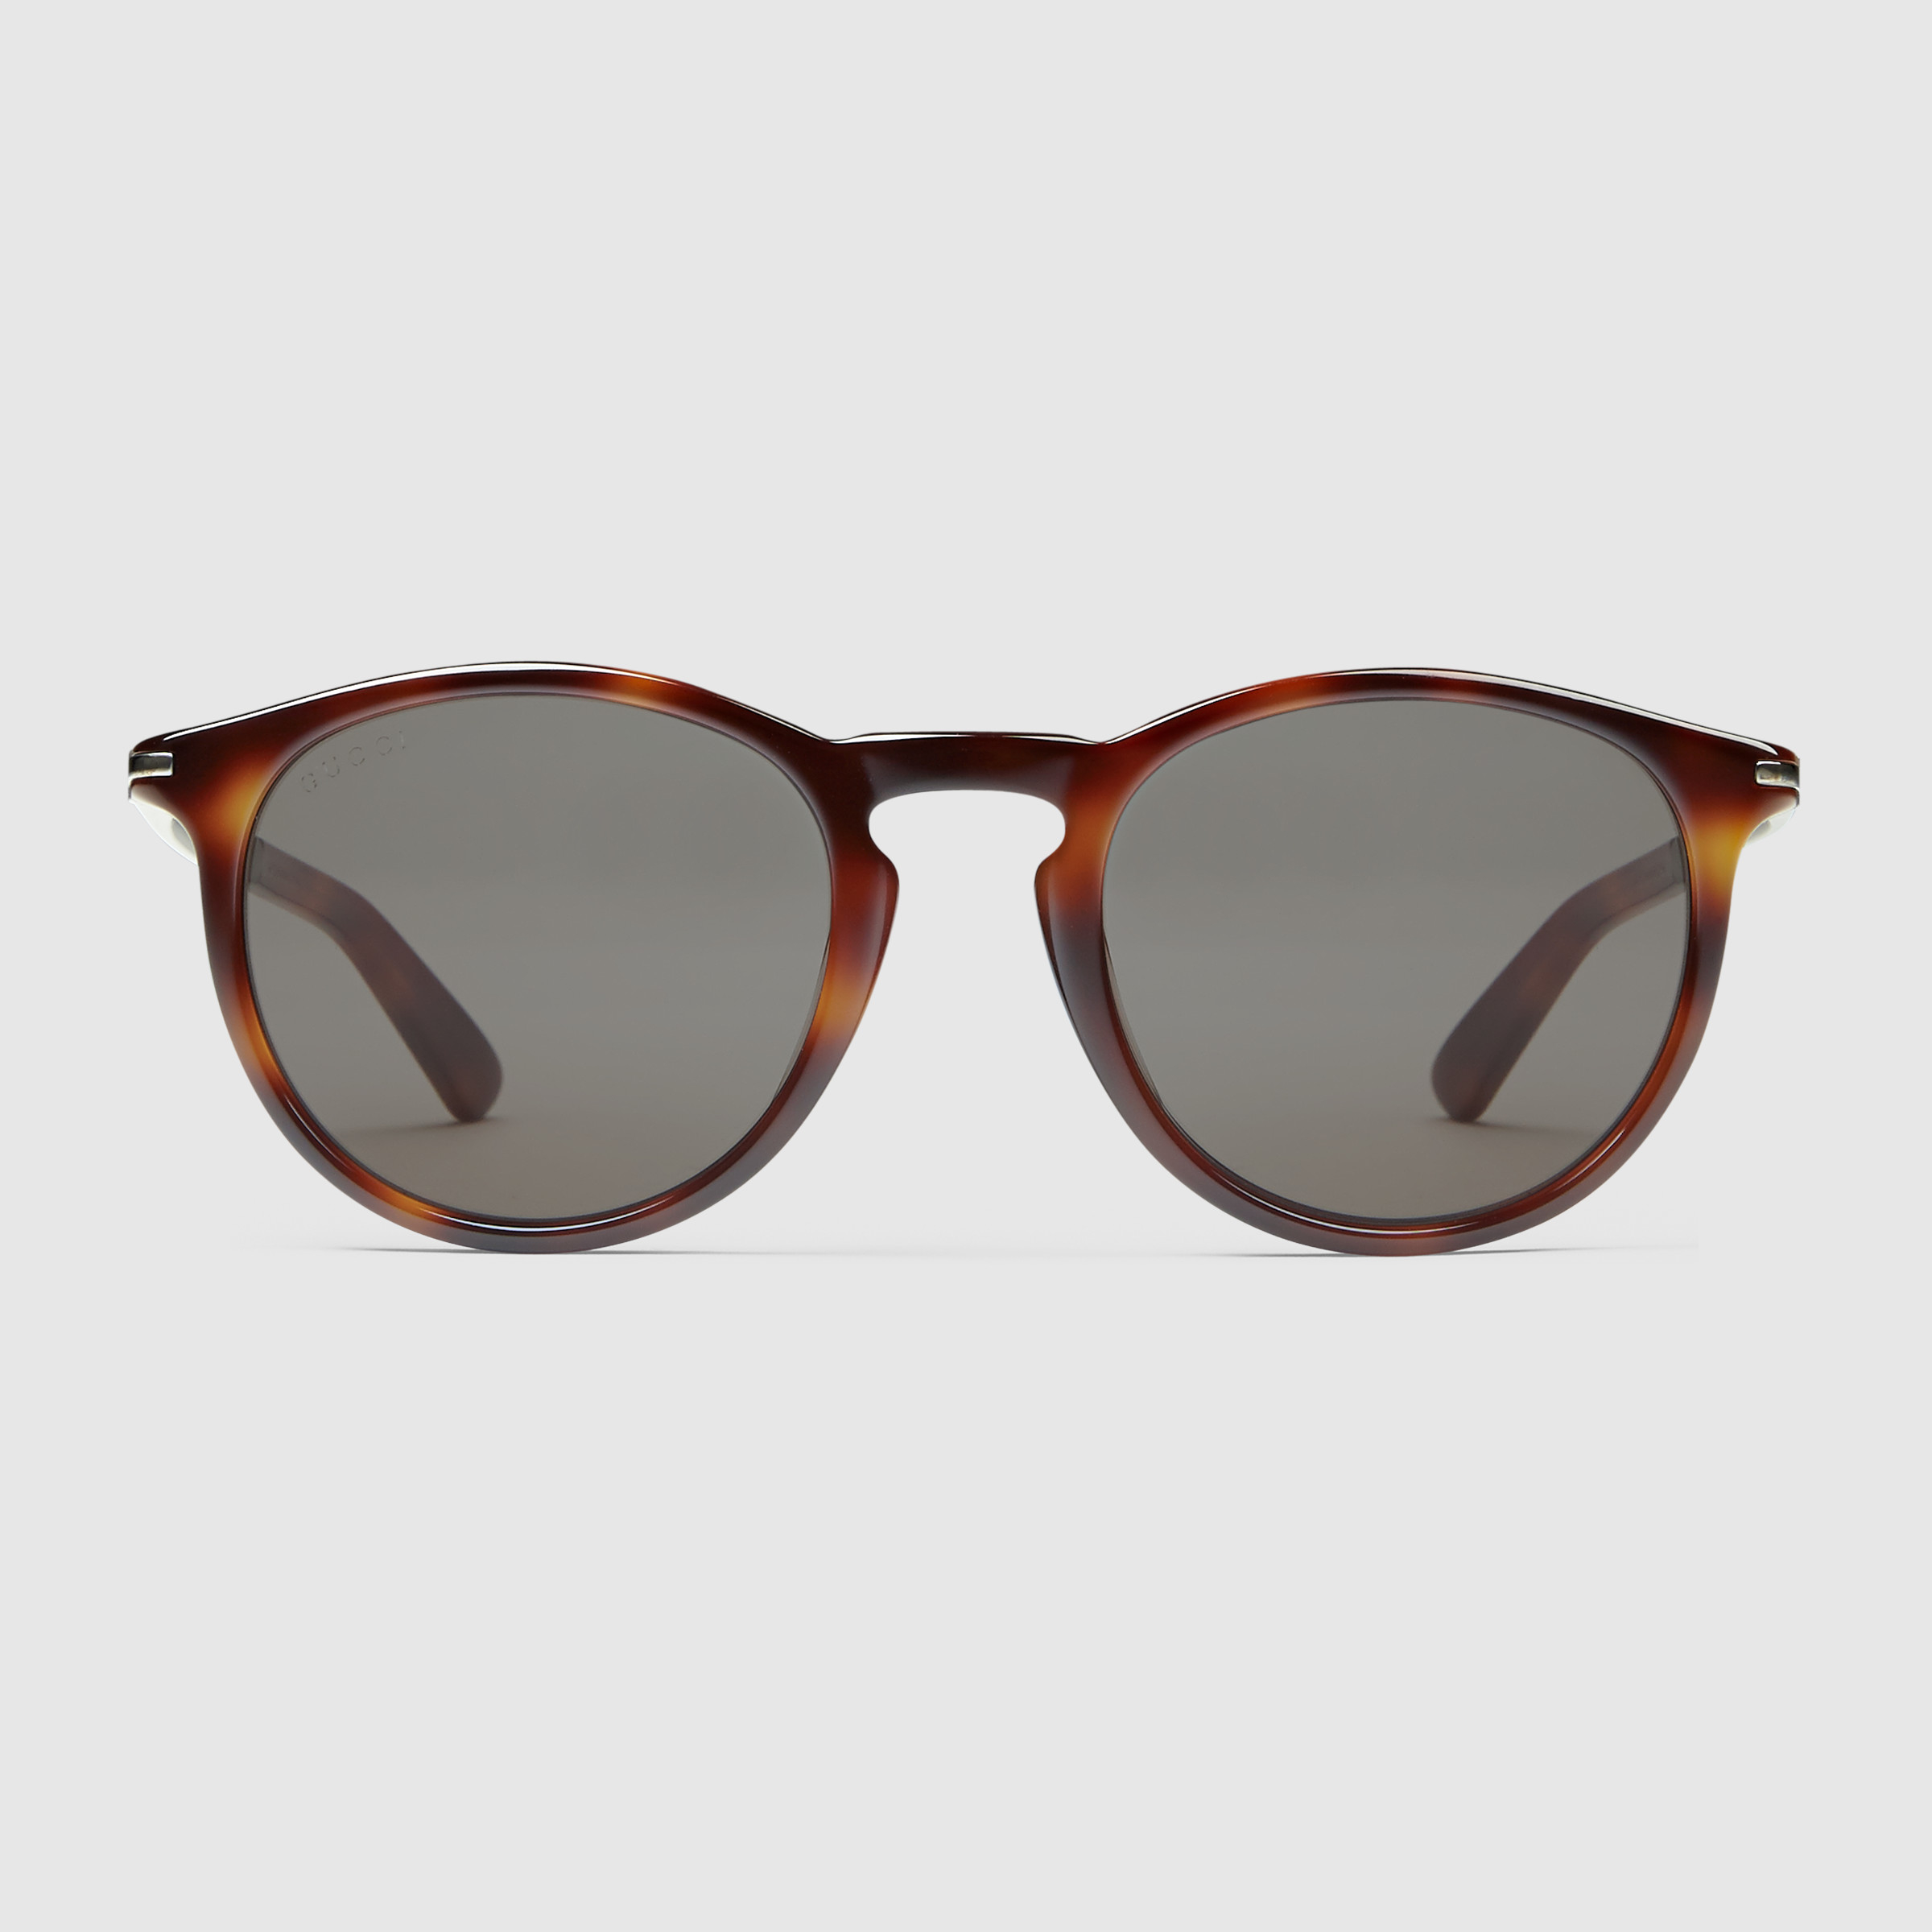 Gucci Frames For Mens Glasses : Gucci Round-frame Acetate And Metal Sunglasses in Brown ...